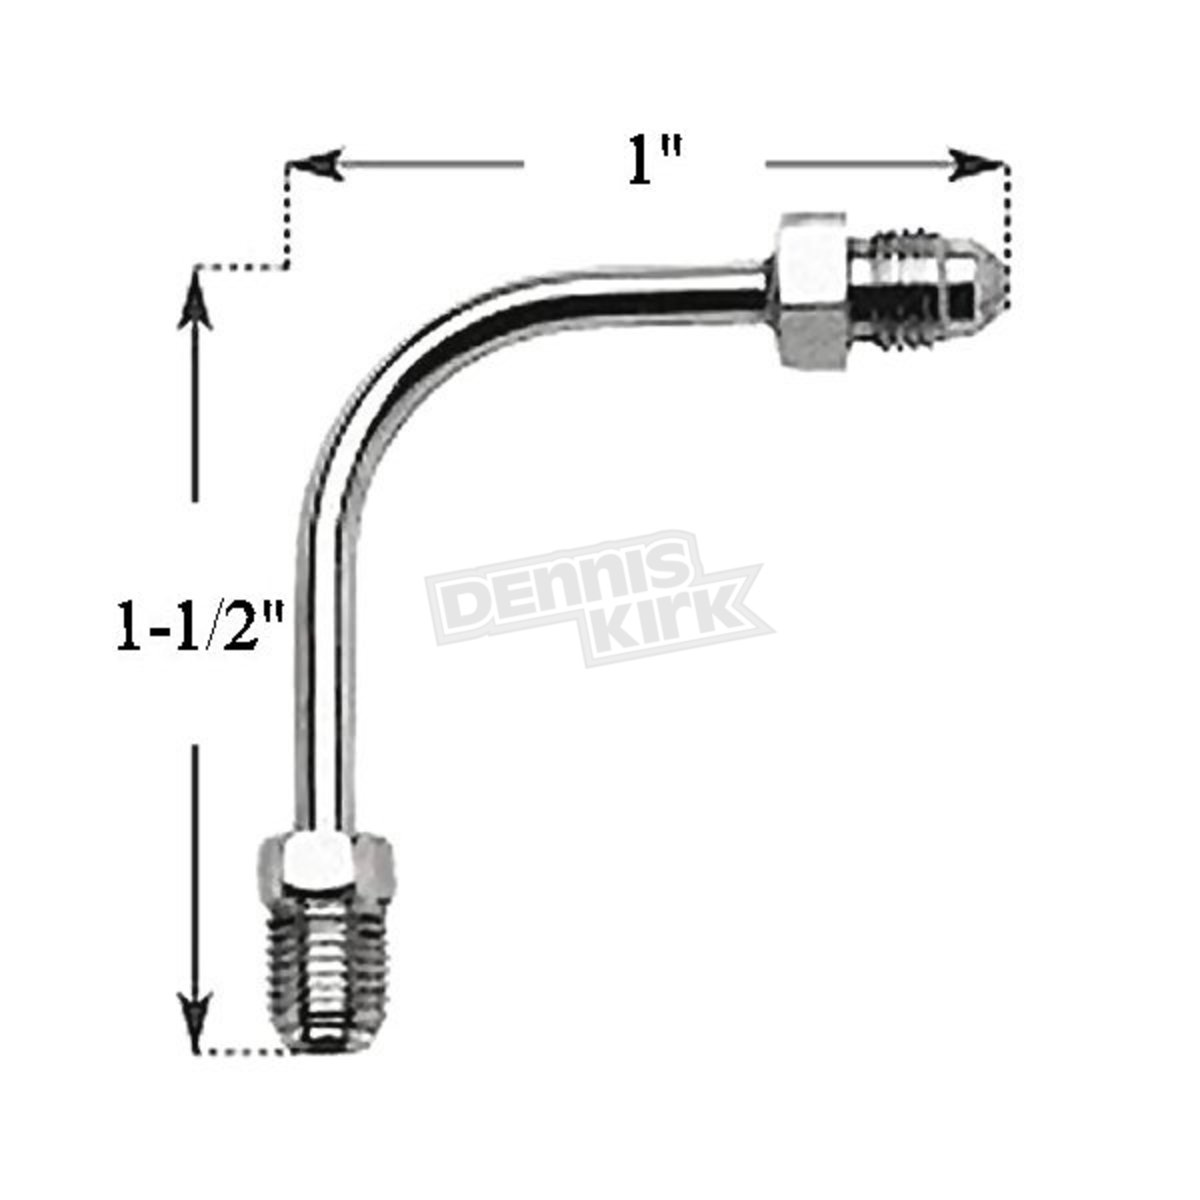 Russell Brake Line Tube 3 8 In 24 Inverted Flare 3 Male 90 Degree Long Bend